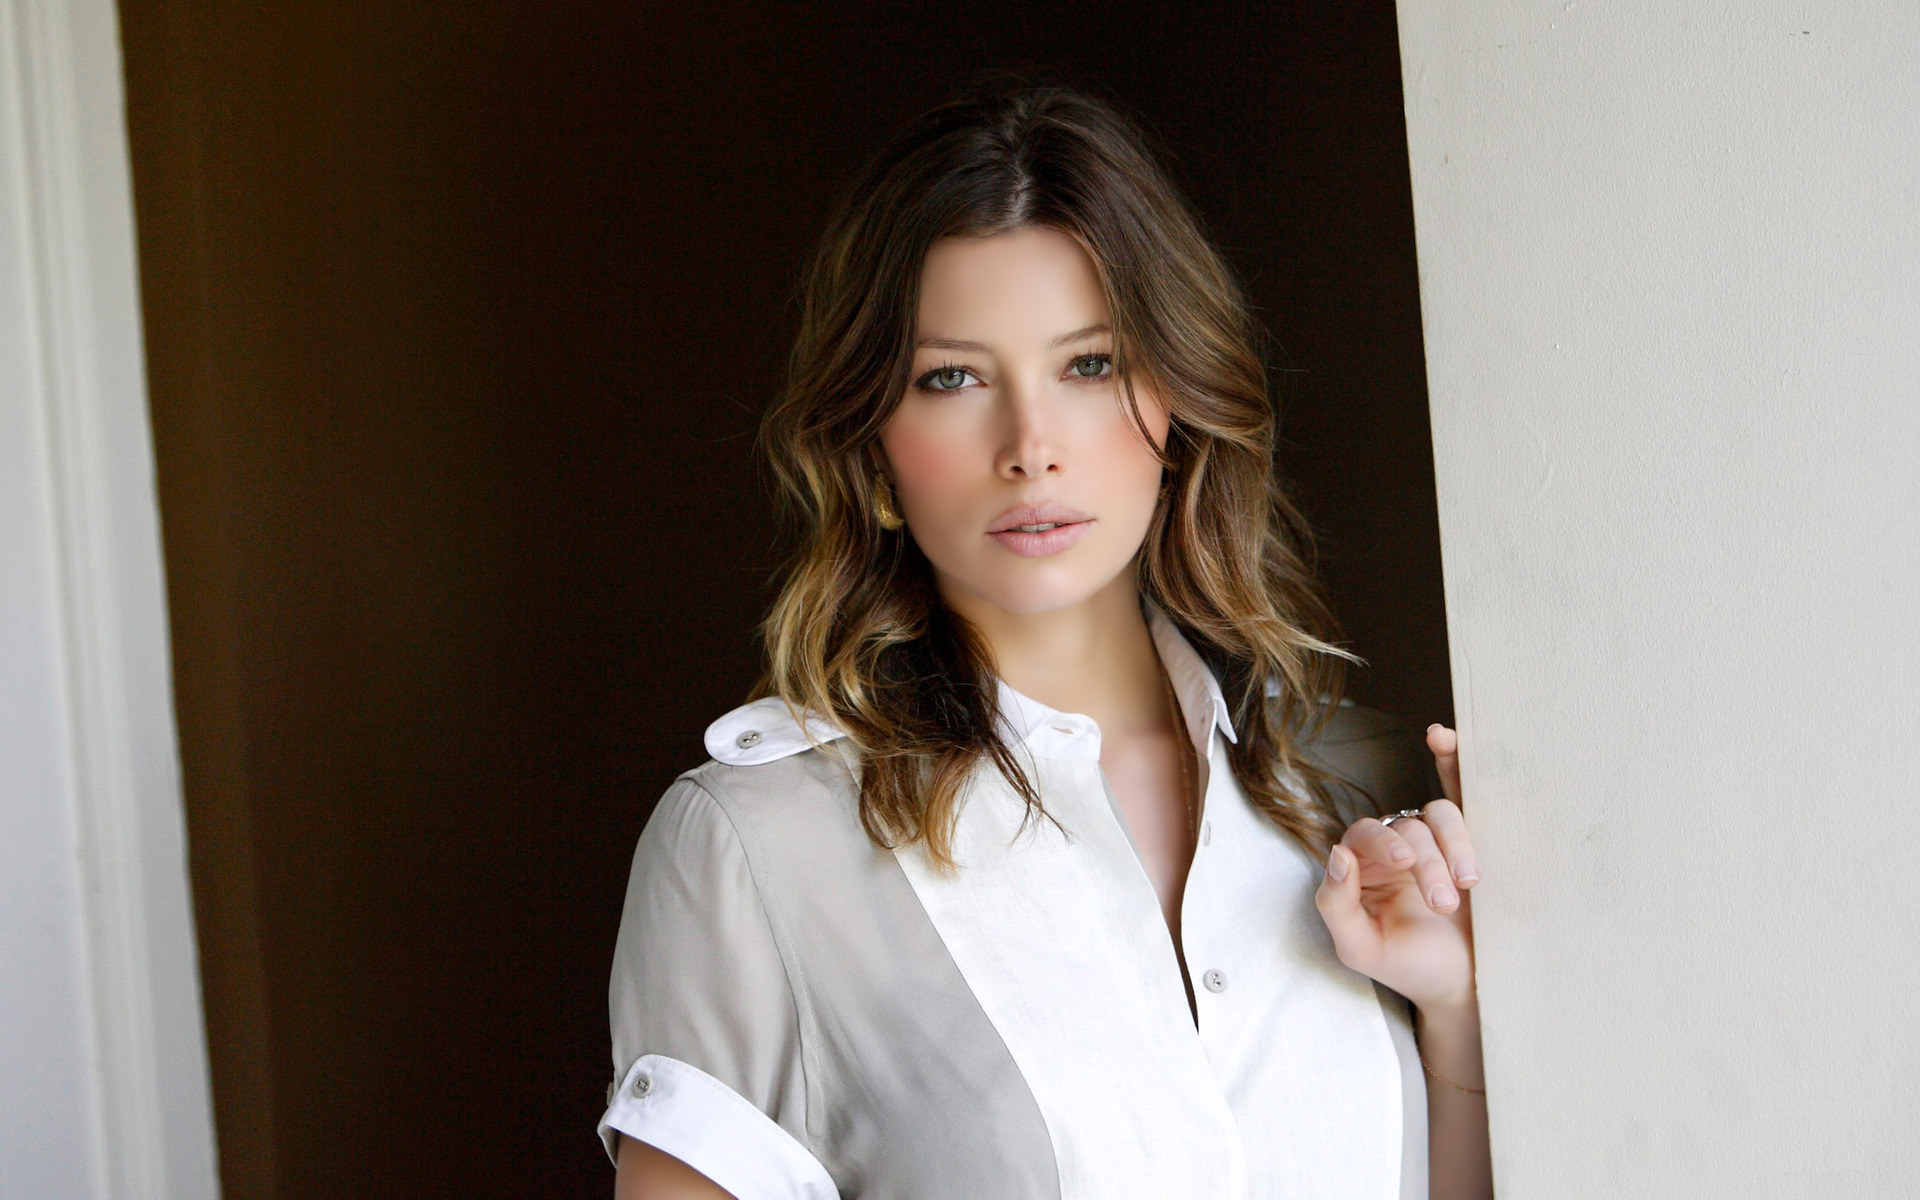 Jessica biel wallpapers 2015 pictures images - Celeb wallpapers ...